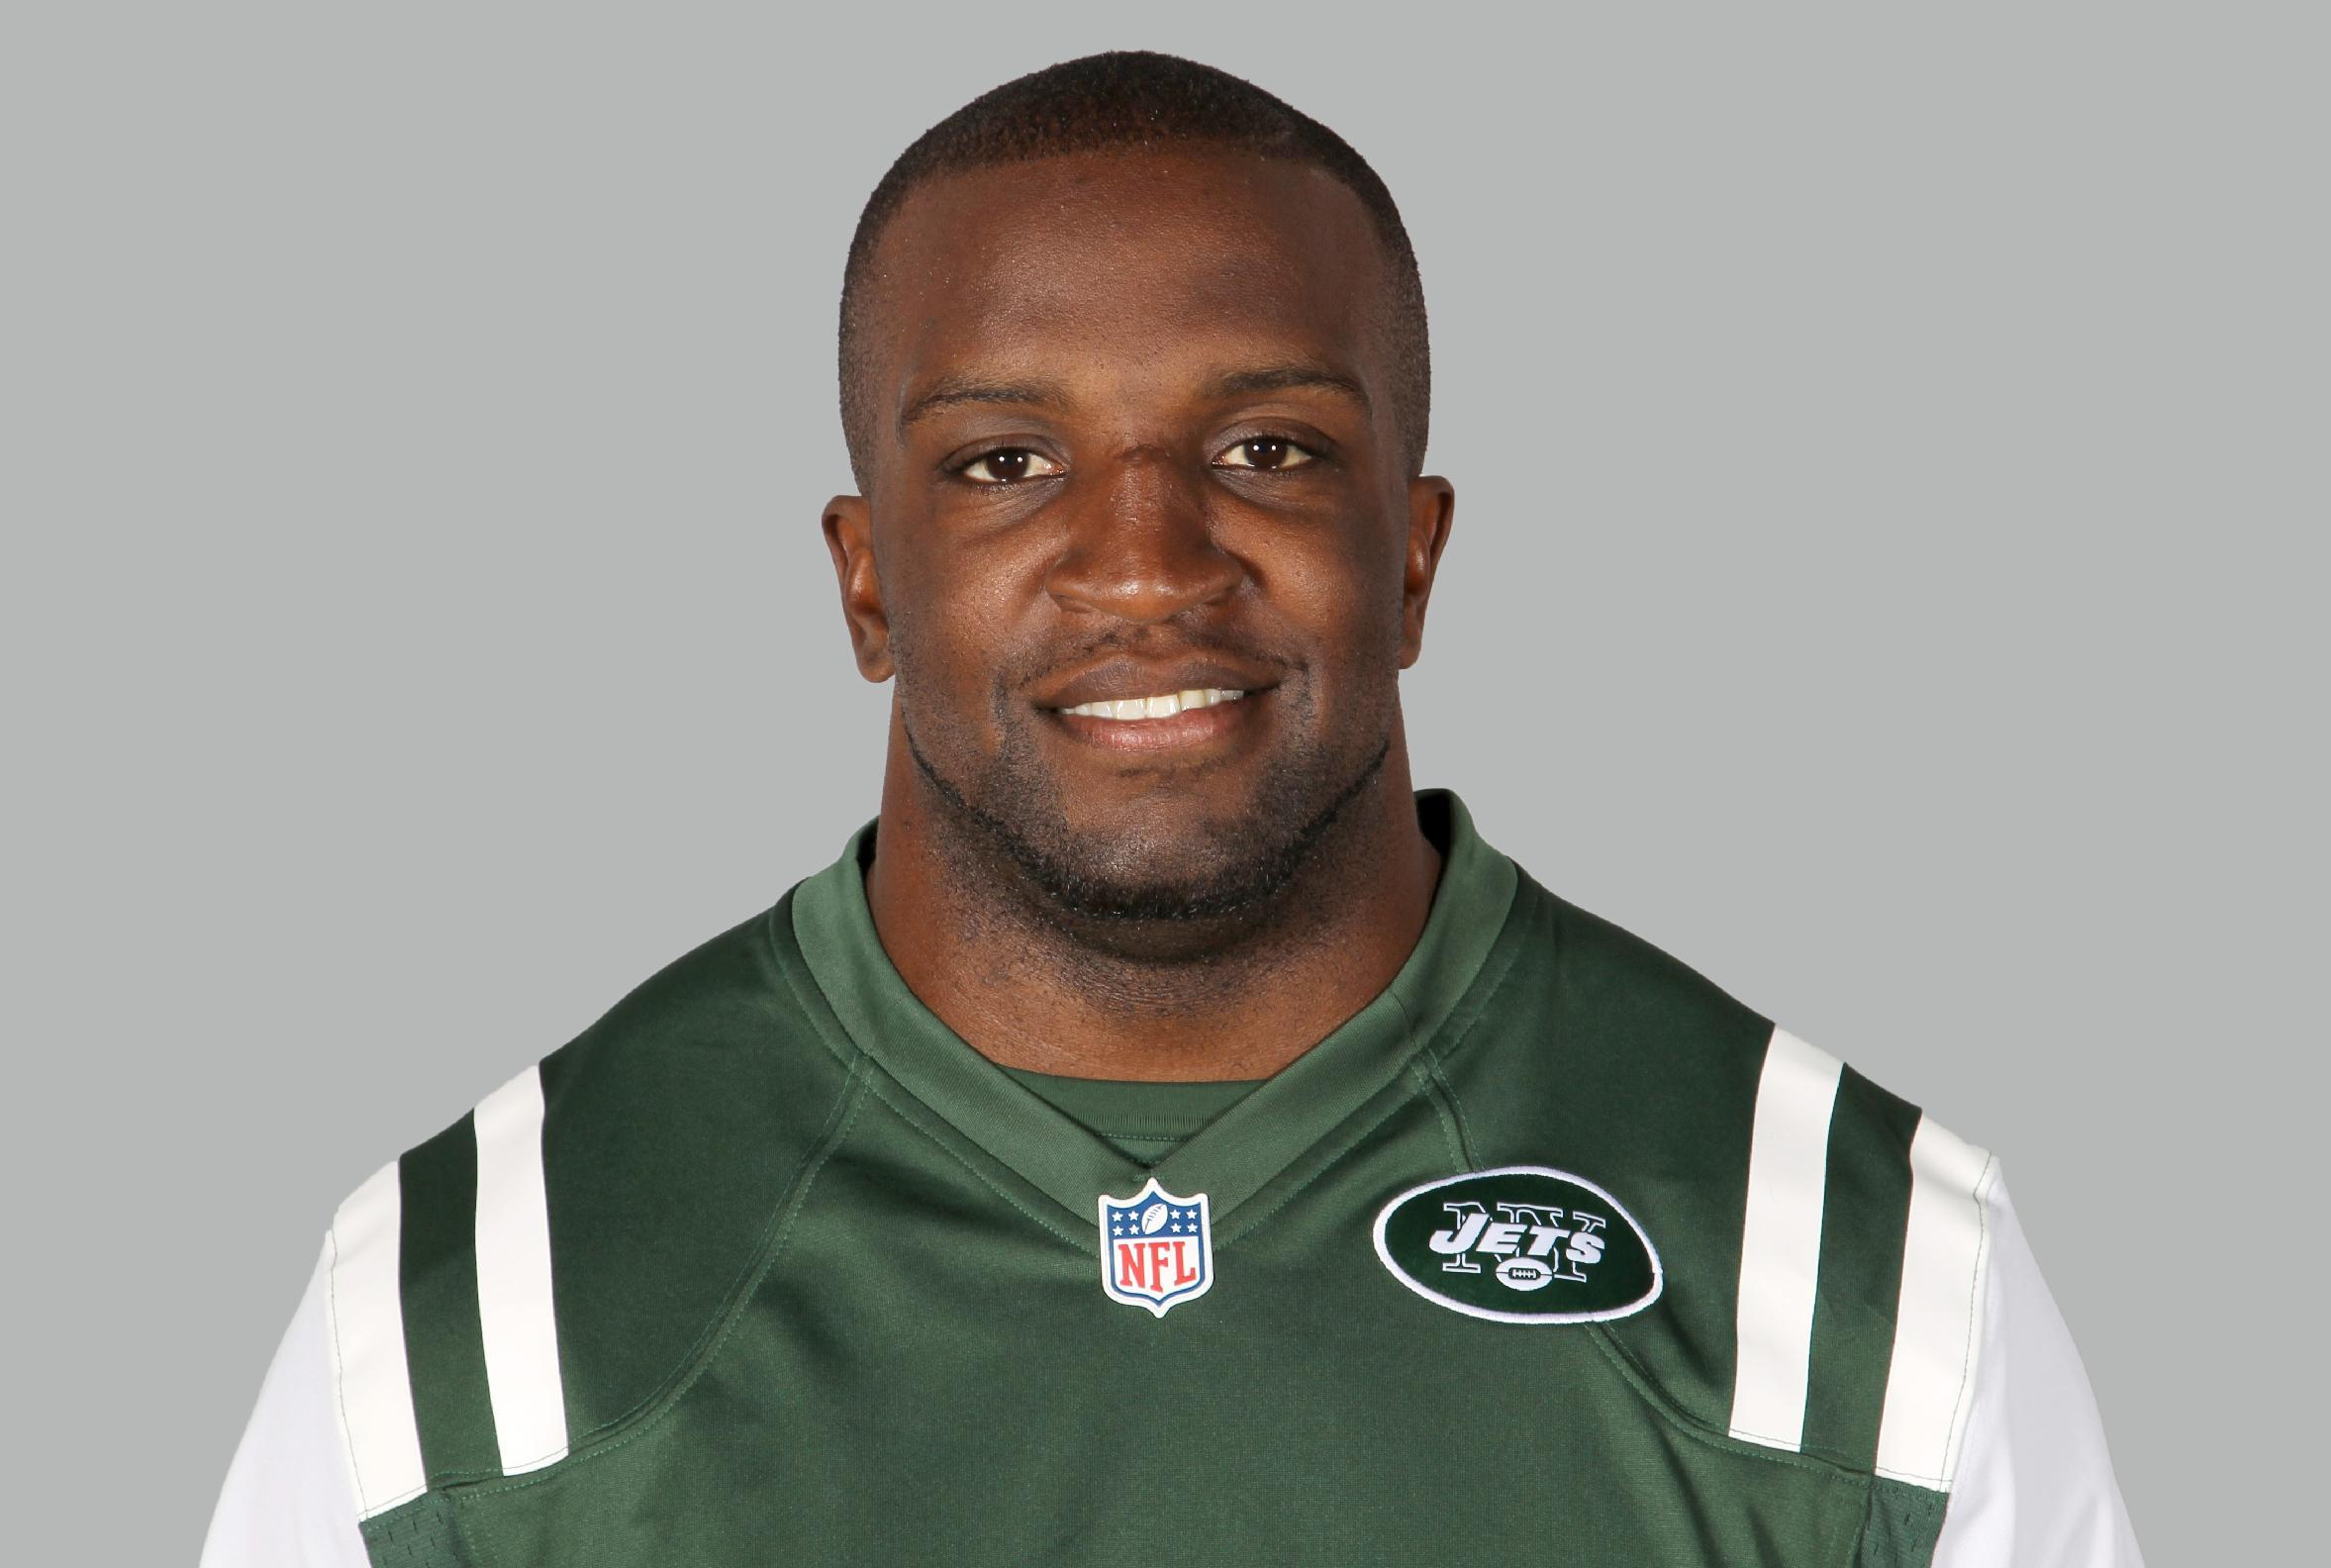 Jets re-sign linebacker David Harris to 3-year deal